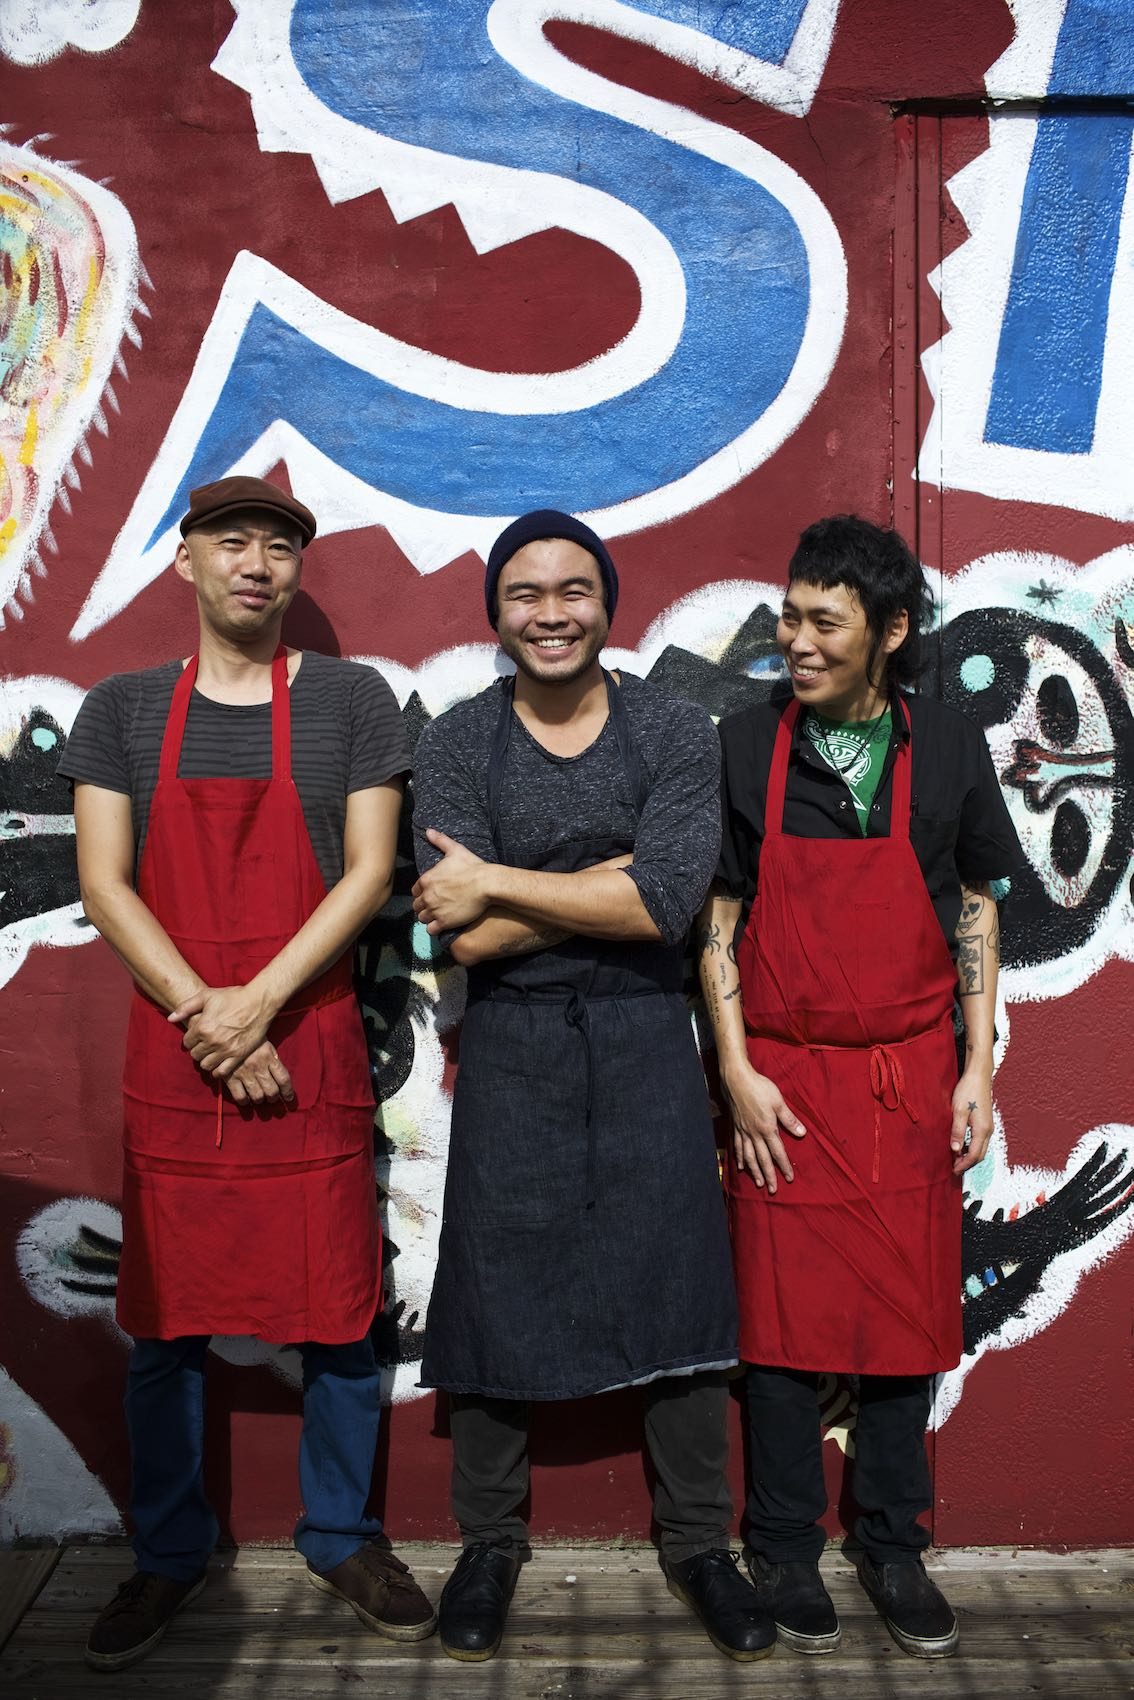 Jody Horton Photography - Three chefs standing against colorfully painted wall.